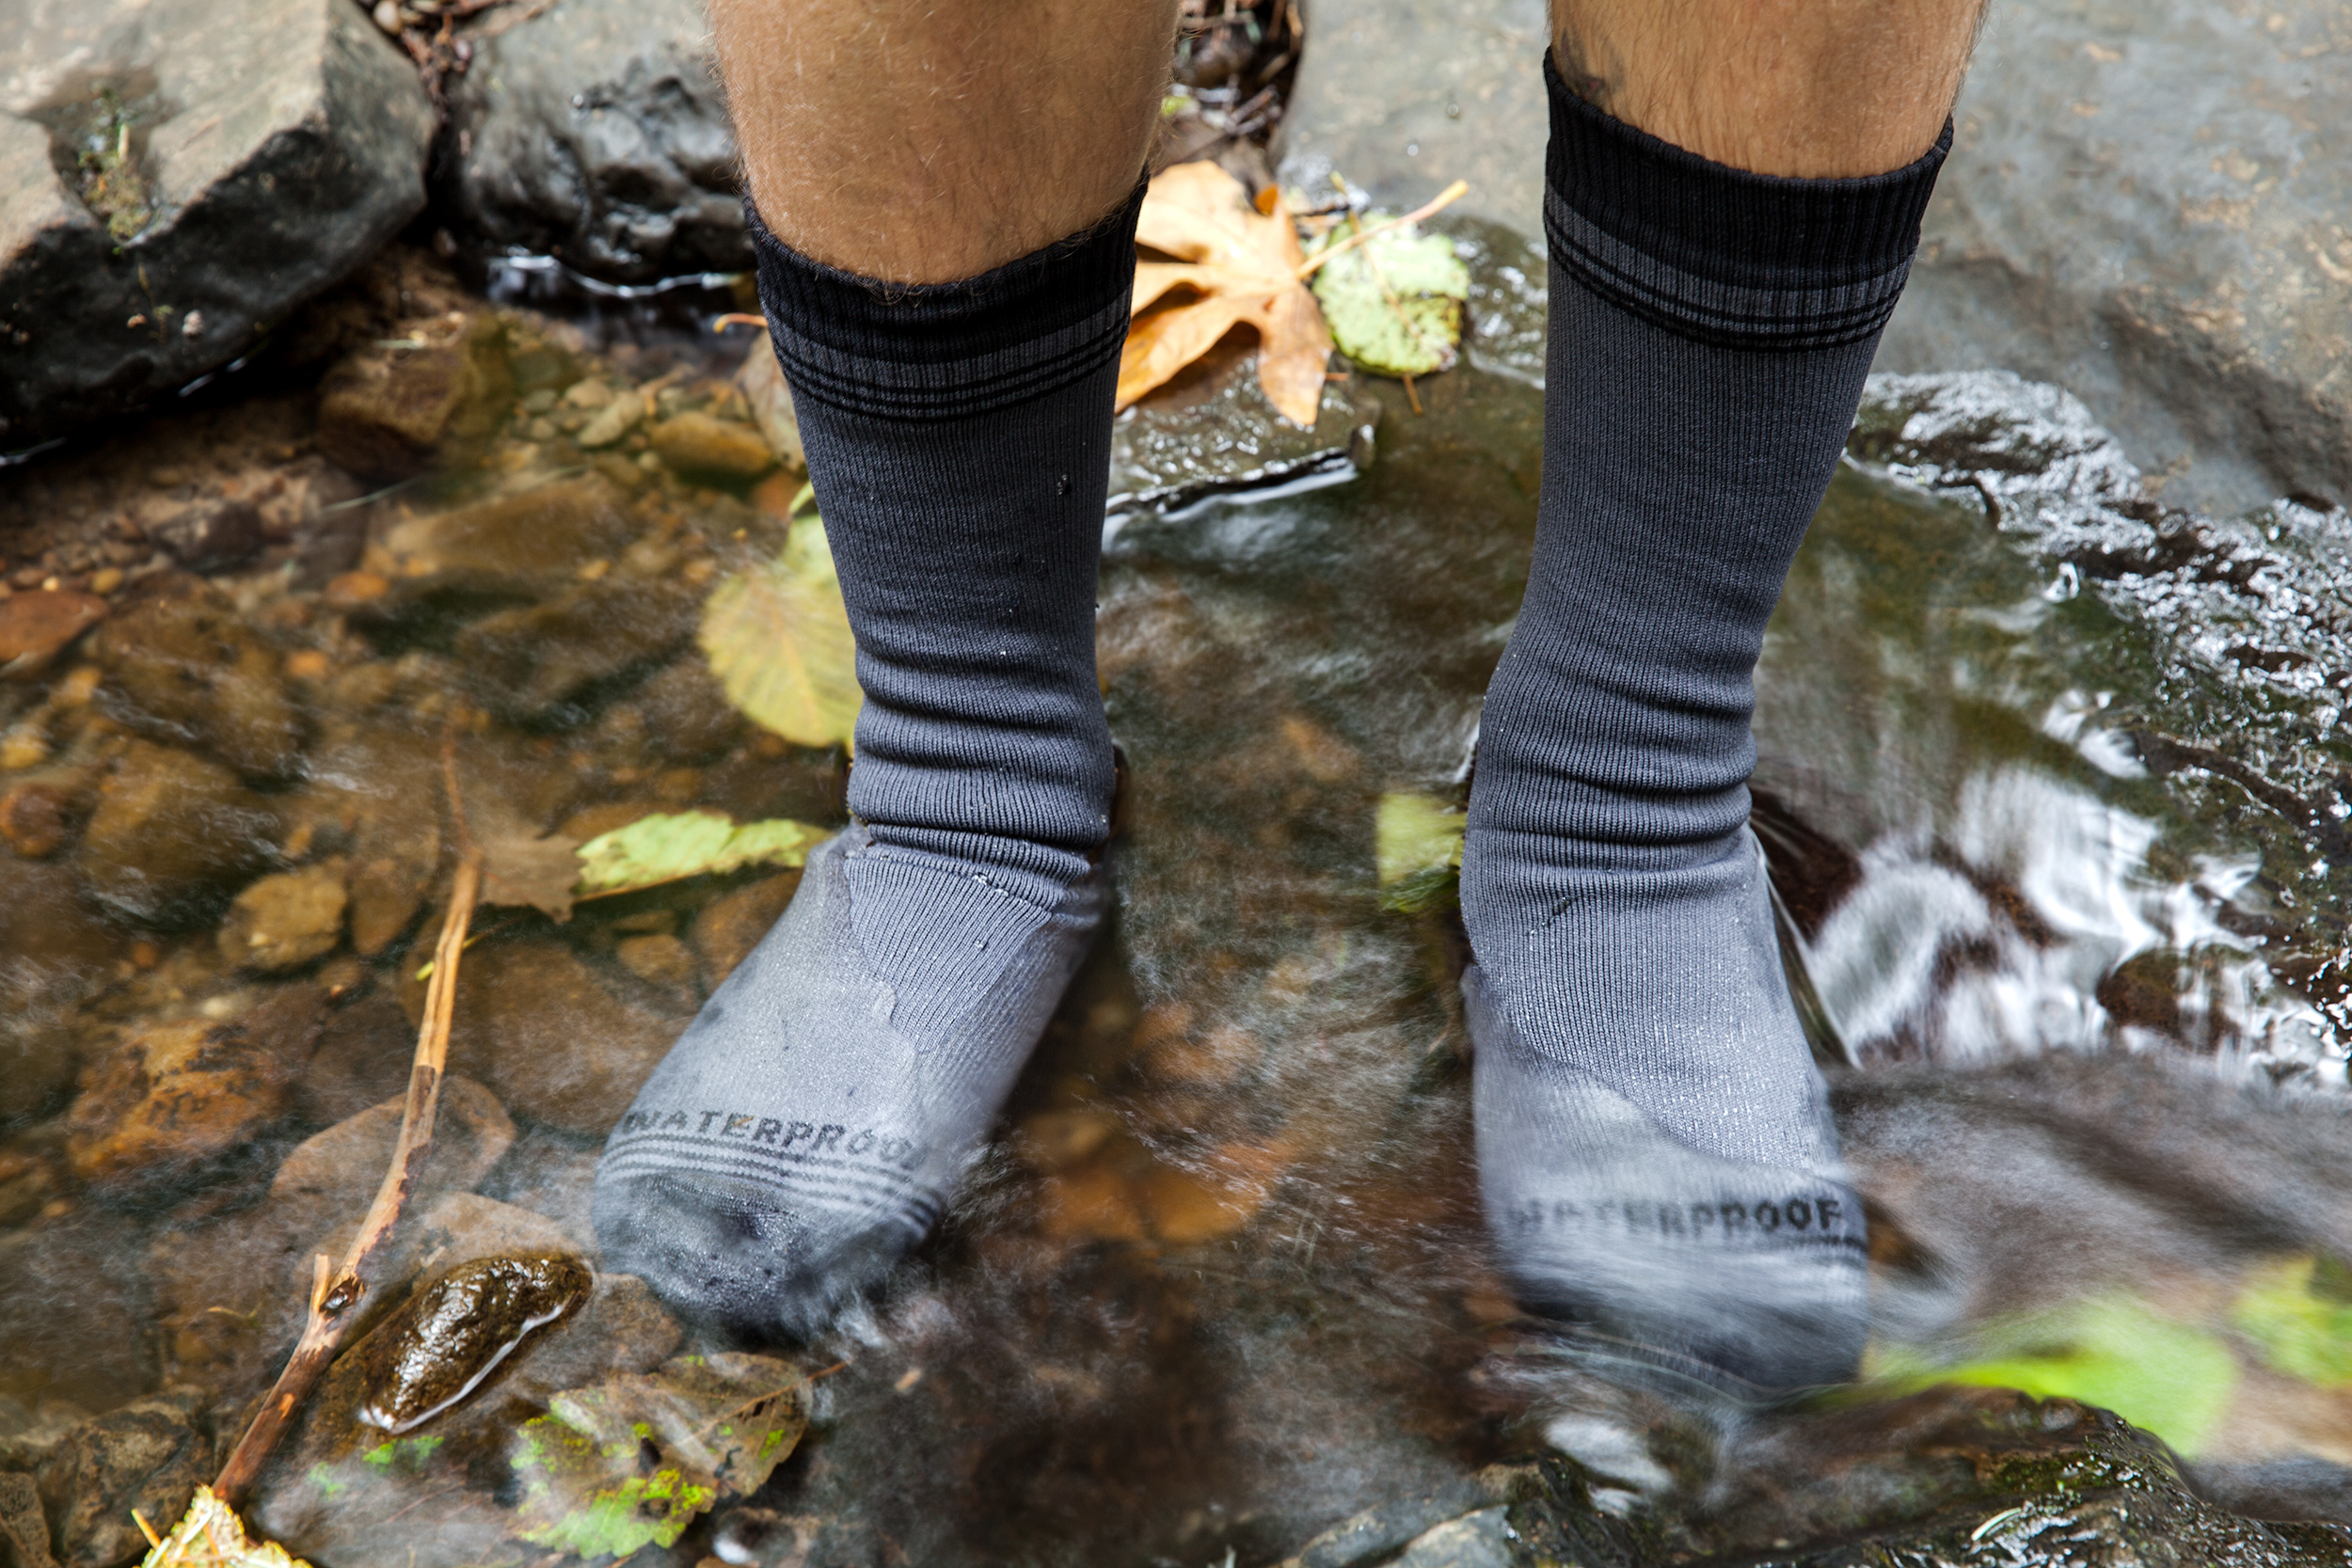 crosspoint-wp-wool-crew-sock-lifestlye-1-water-not-cropped